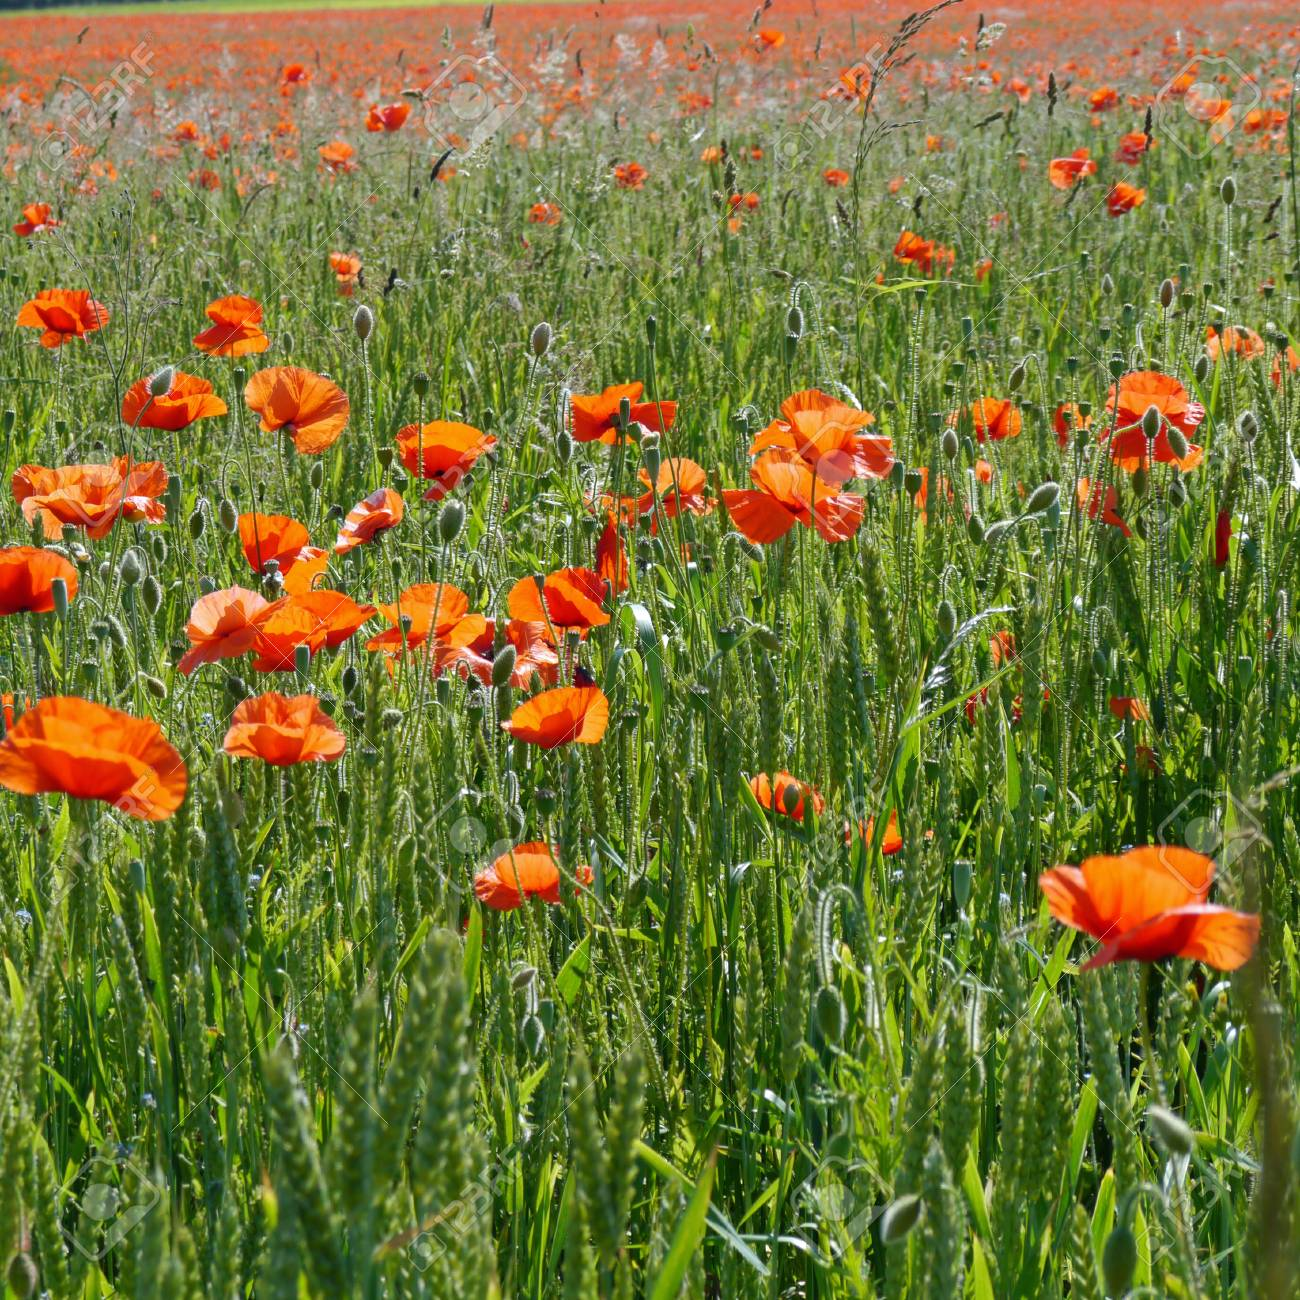 A meadow full of poppies and grasses in rural English countryside Standard-Bild - 81777947